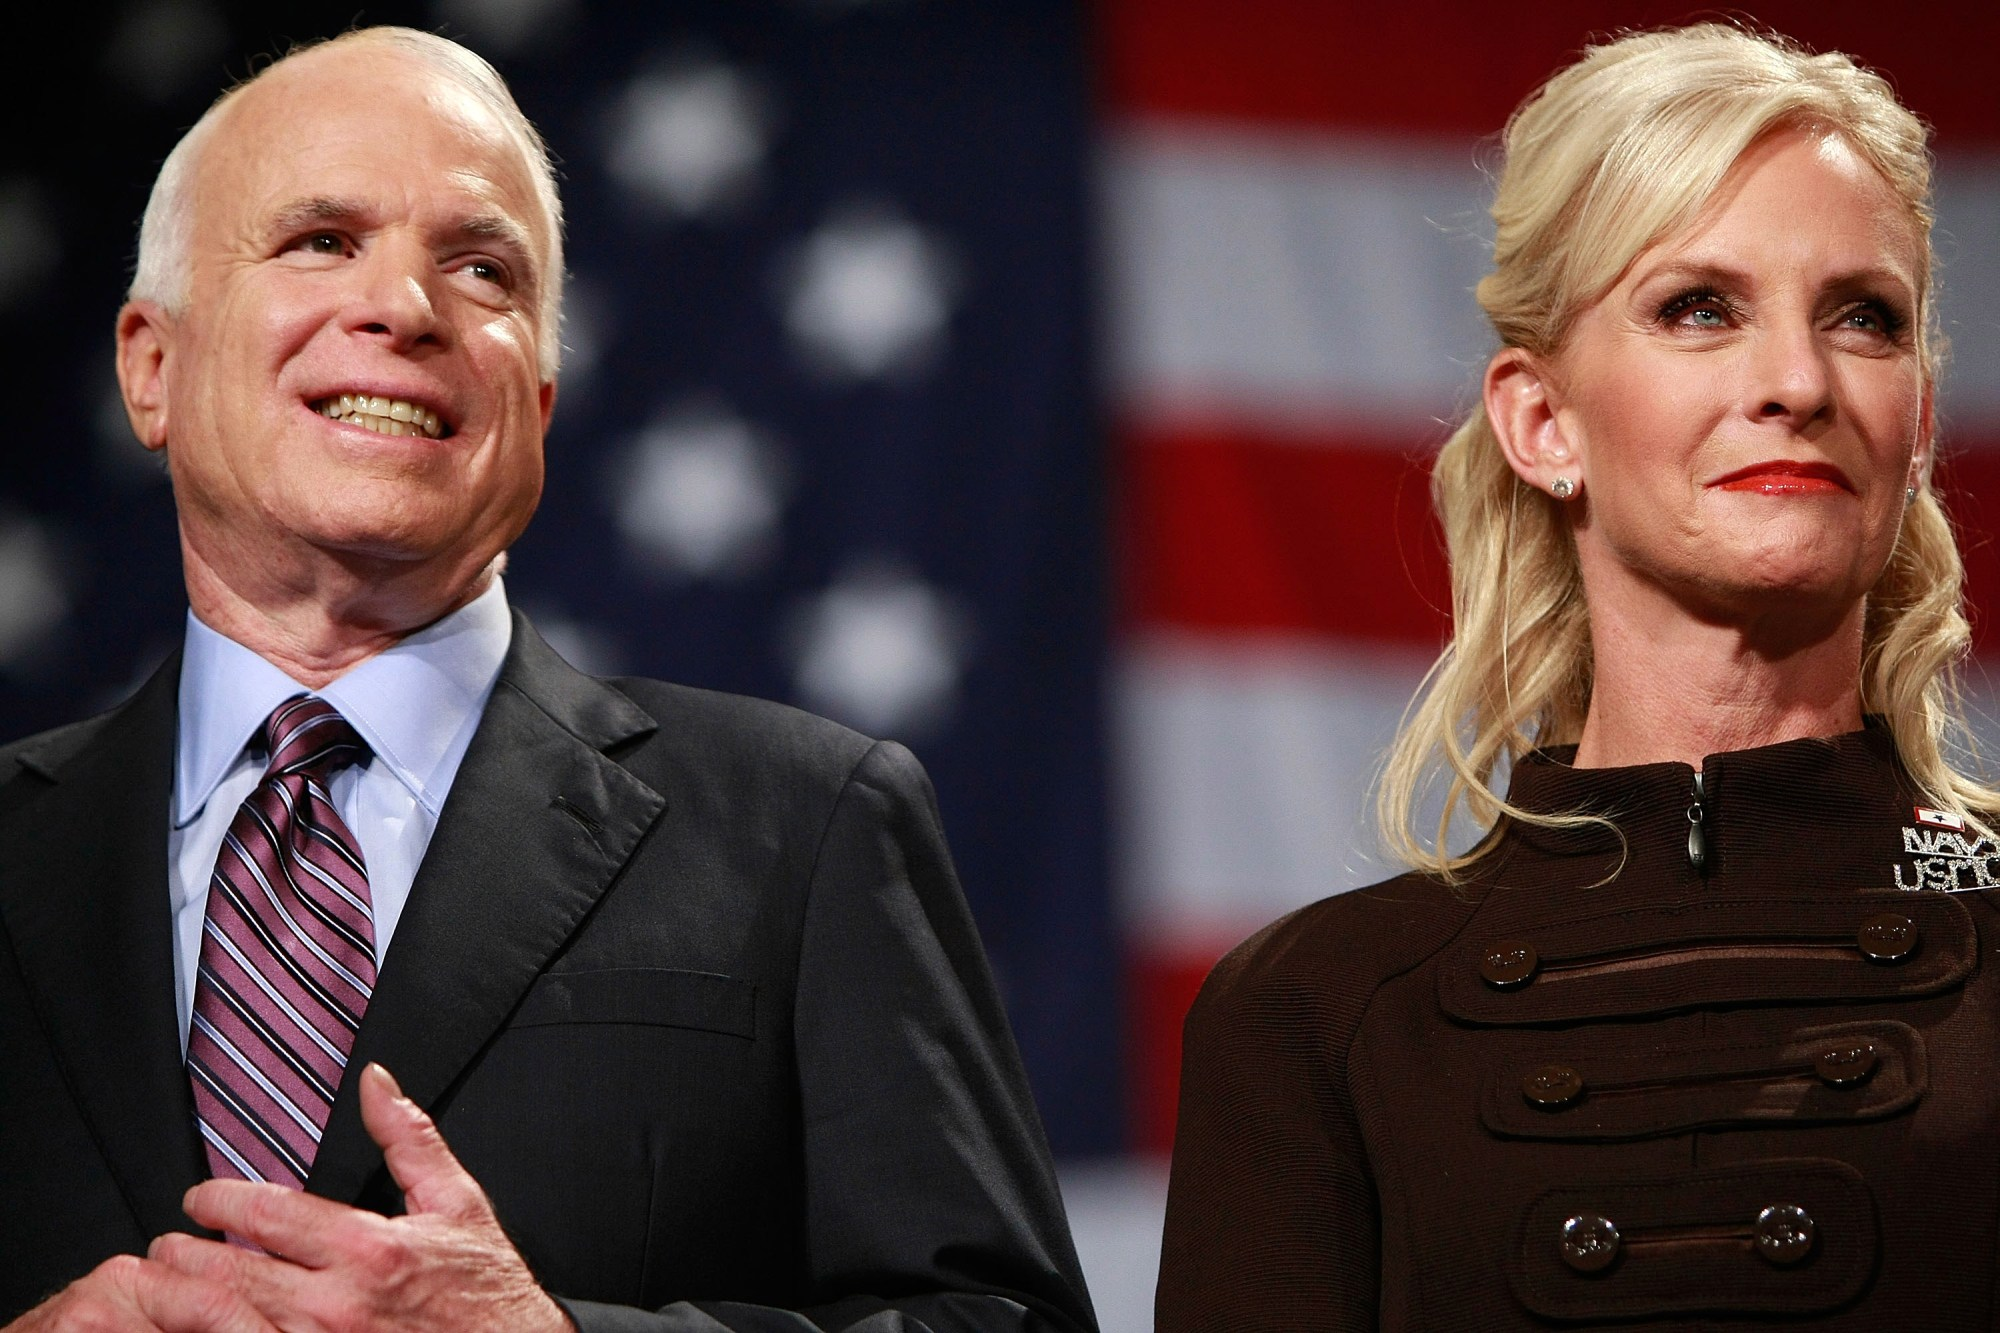 Then-Republican presidential nominee Sen. John McCain and his wife Cindy McCain attend a rally at the United Sports Training Center on Oct. 16, 2008, in Pennsylvania. (Chip Somodevilla/Getty Images)